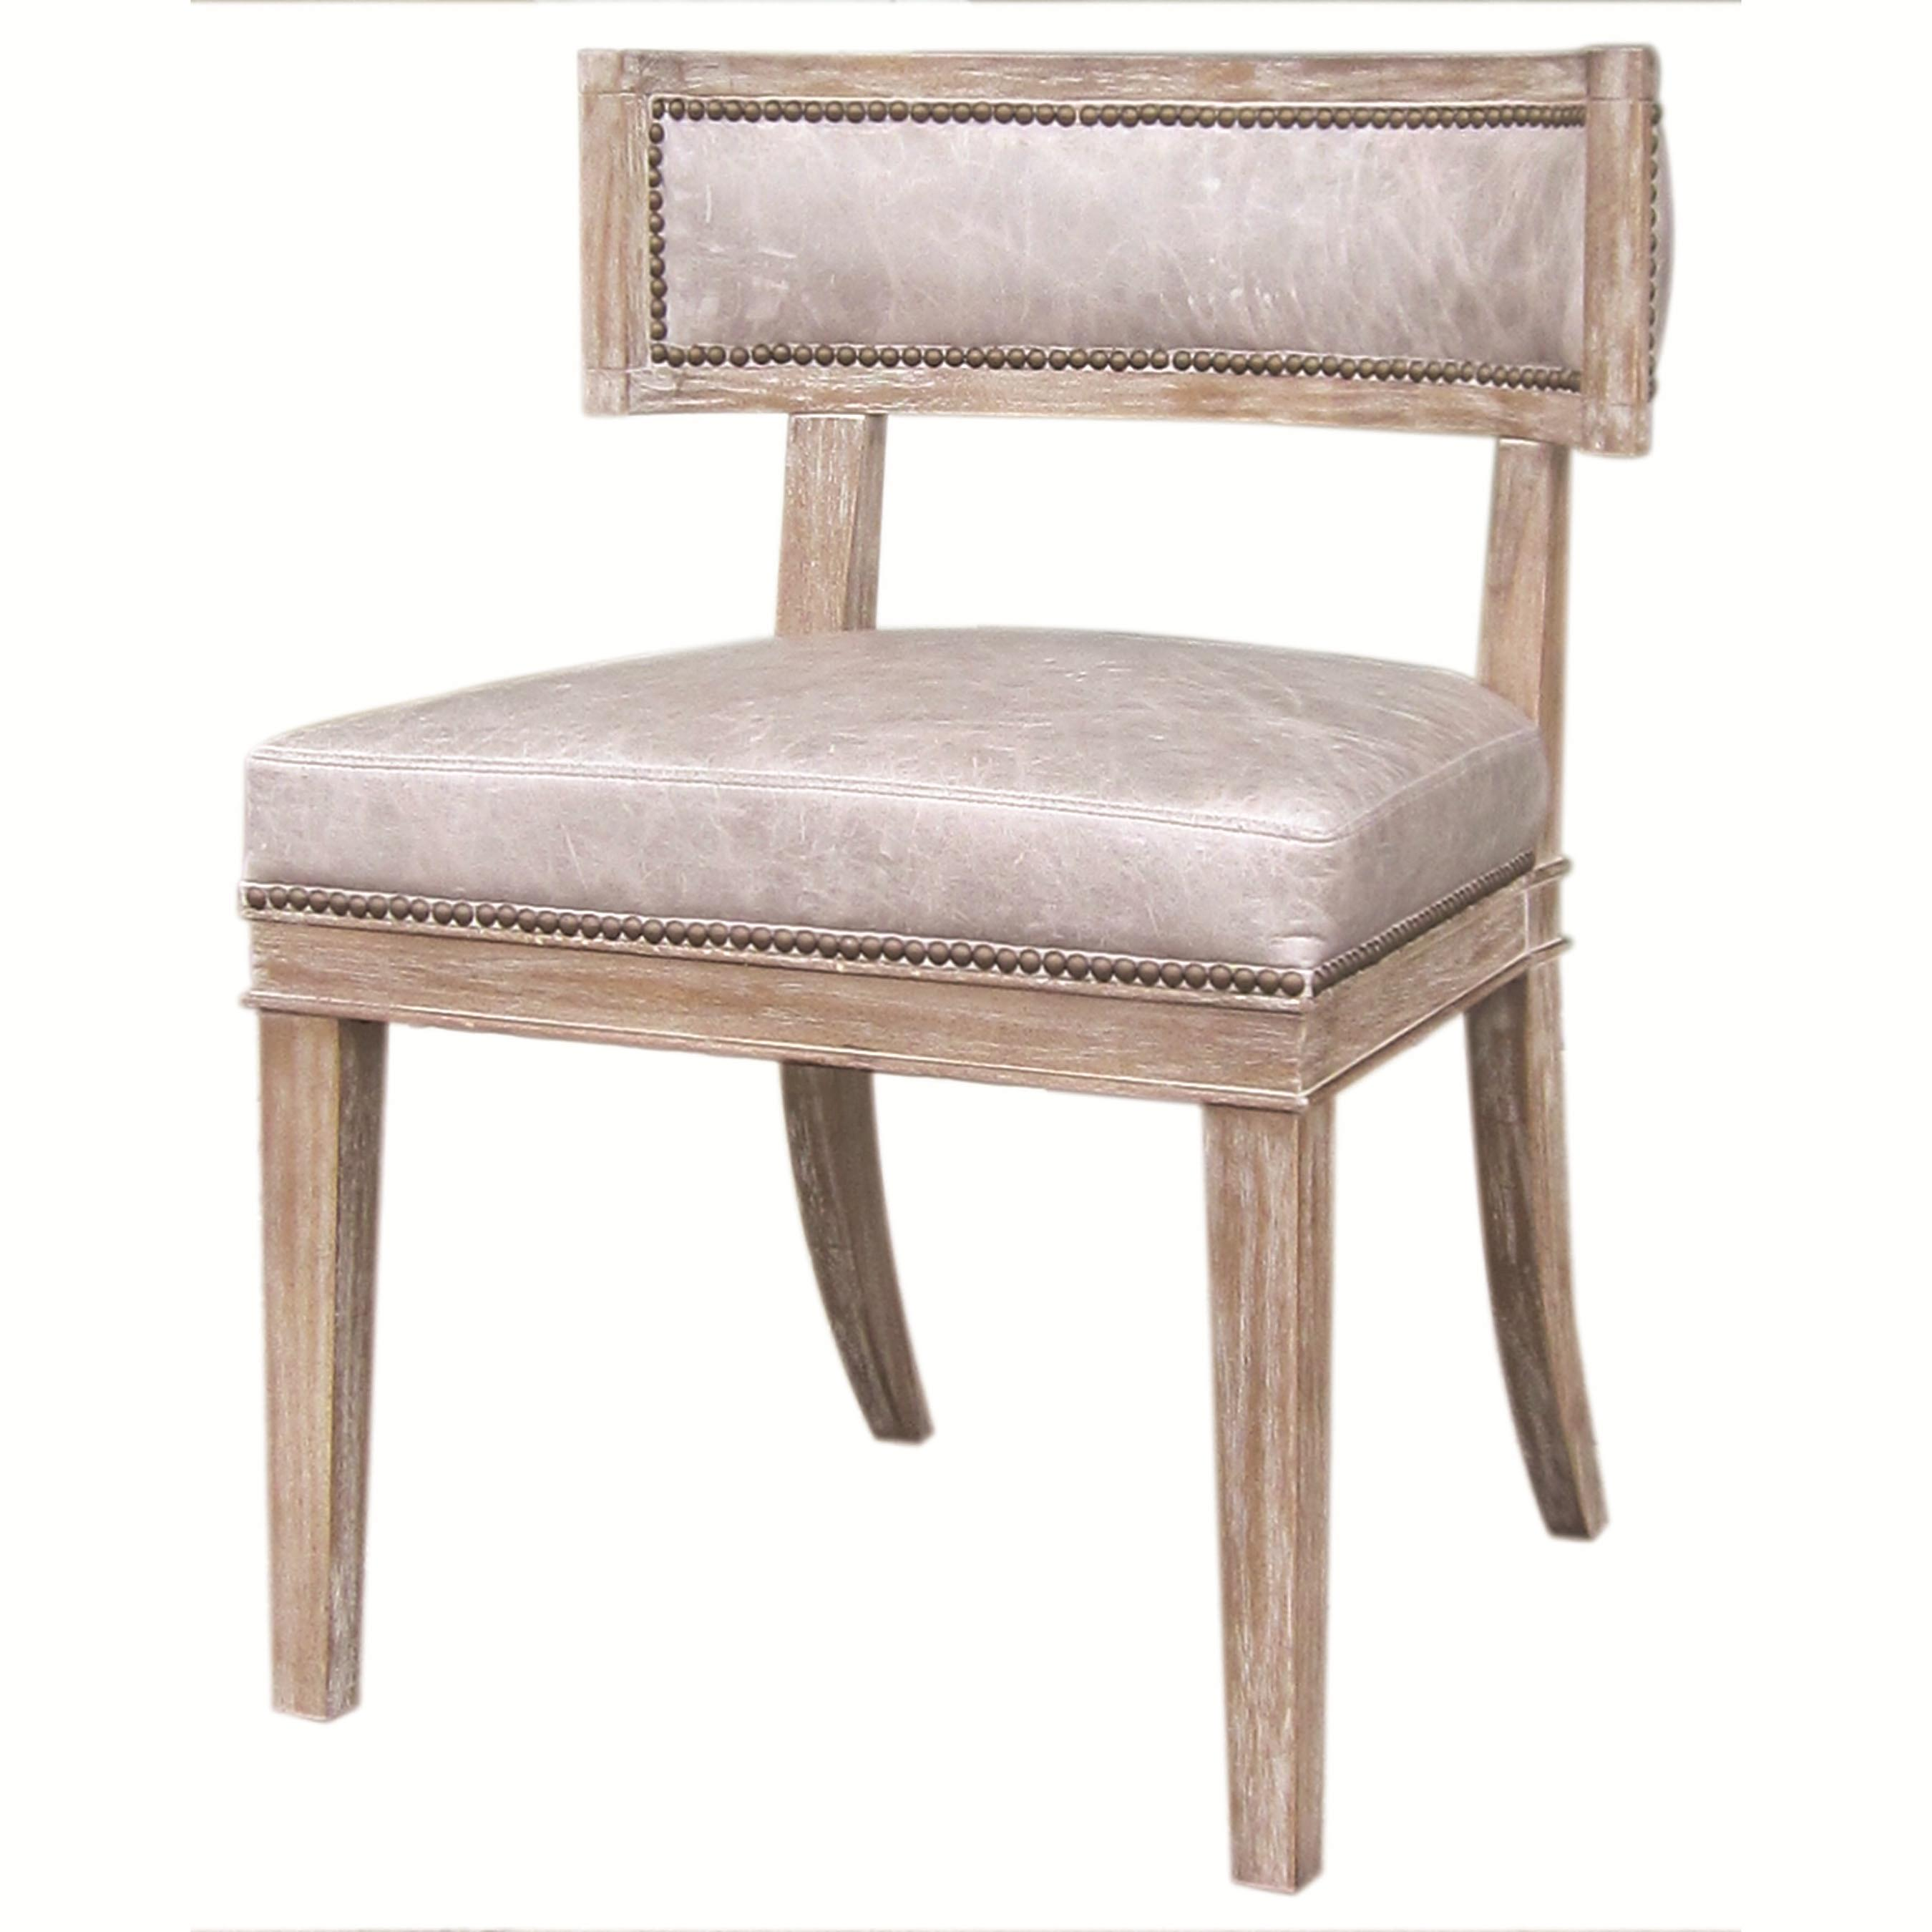 Four Hands Kensington Distressed Carter Dining Chair W